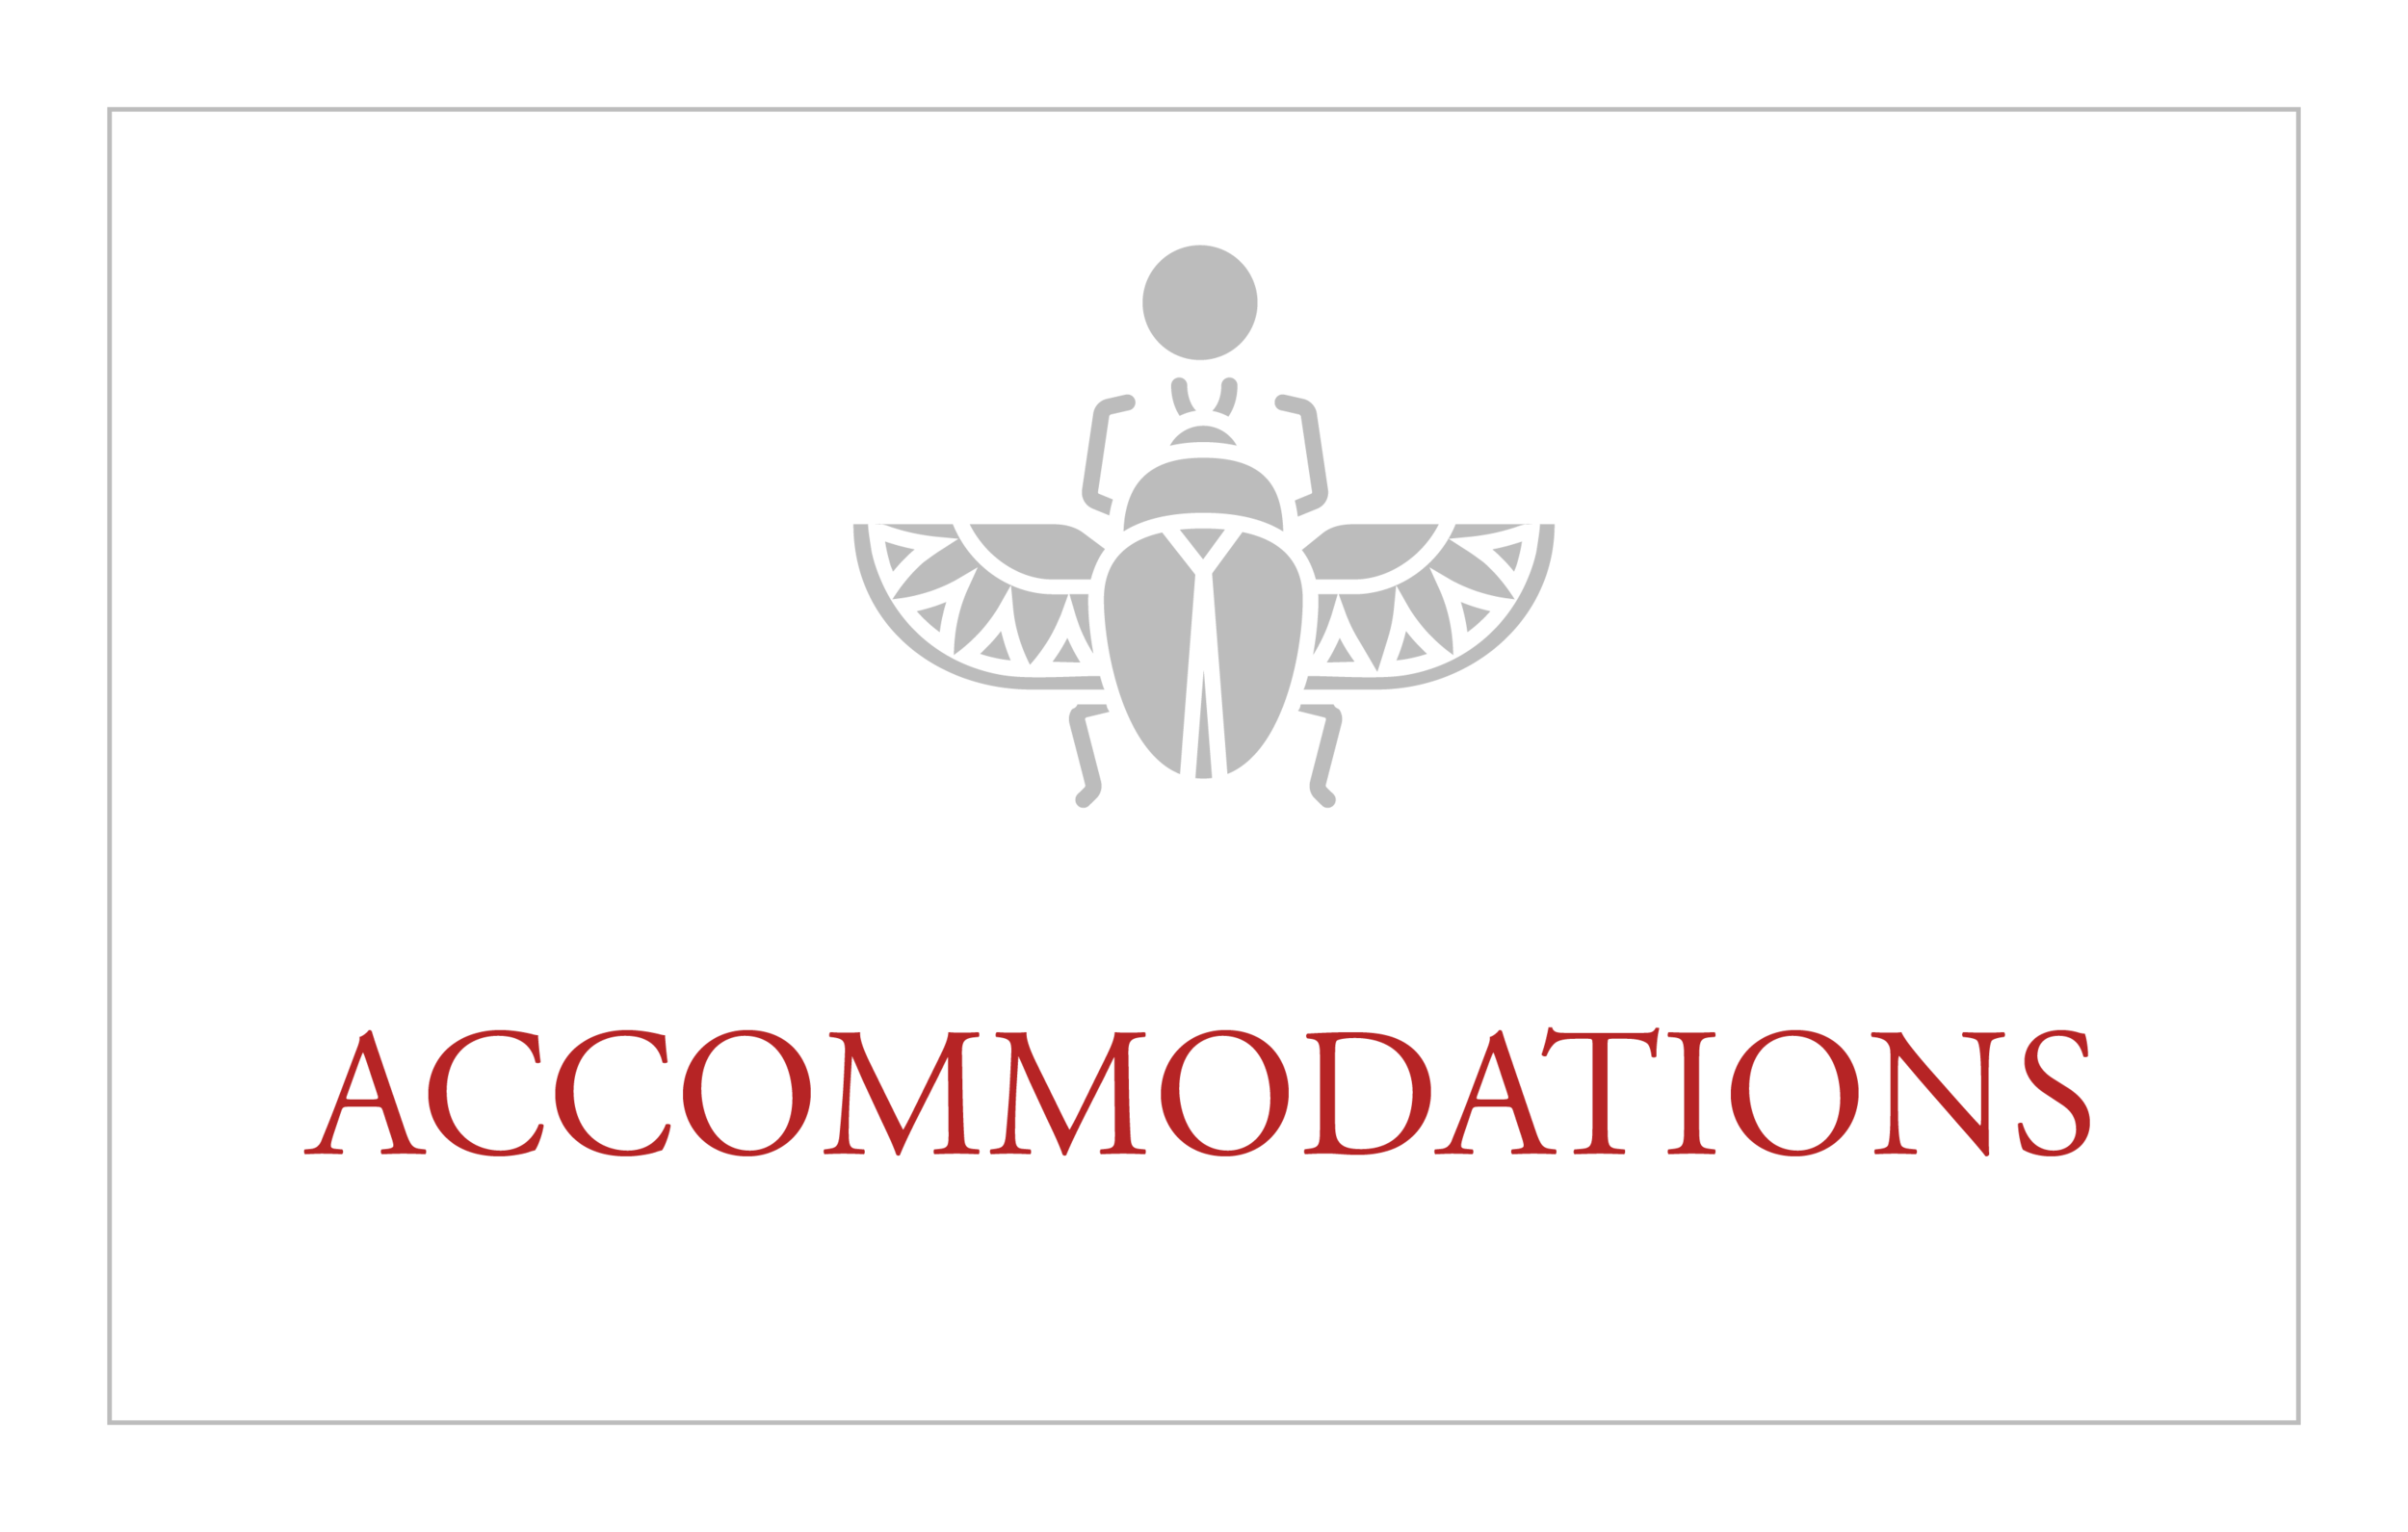 Accommodations-01.png